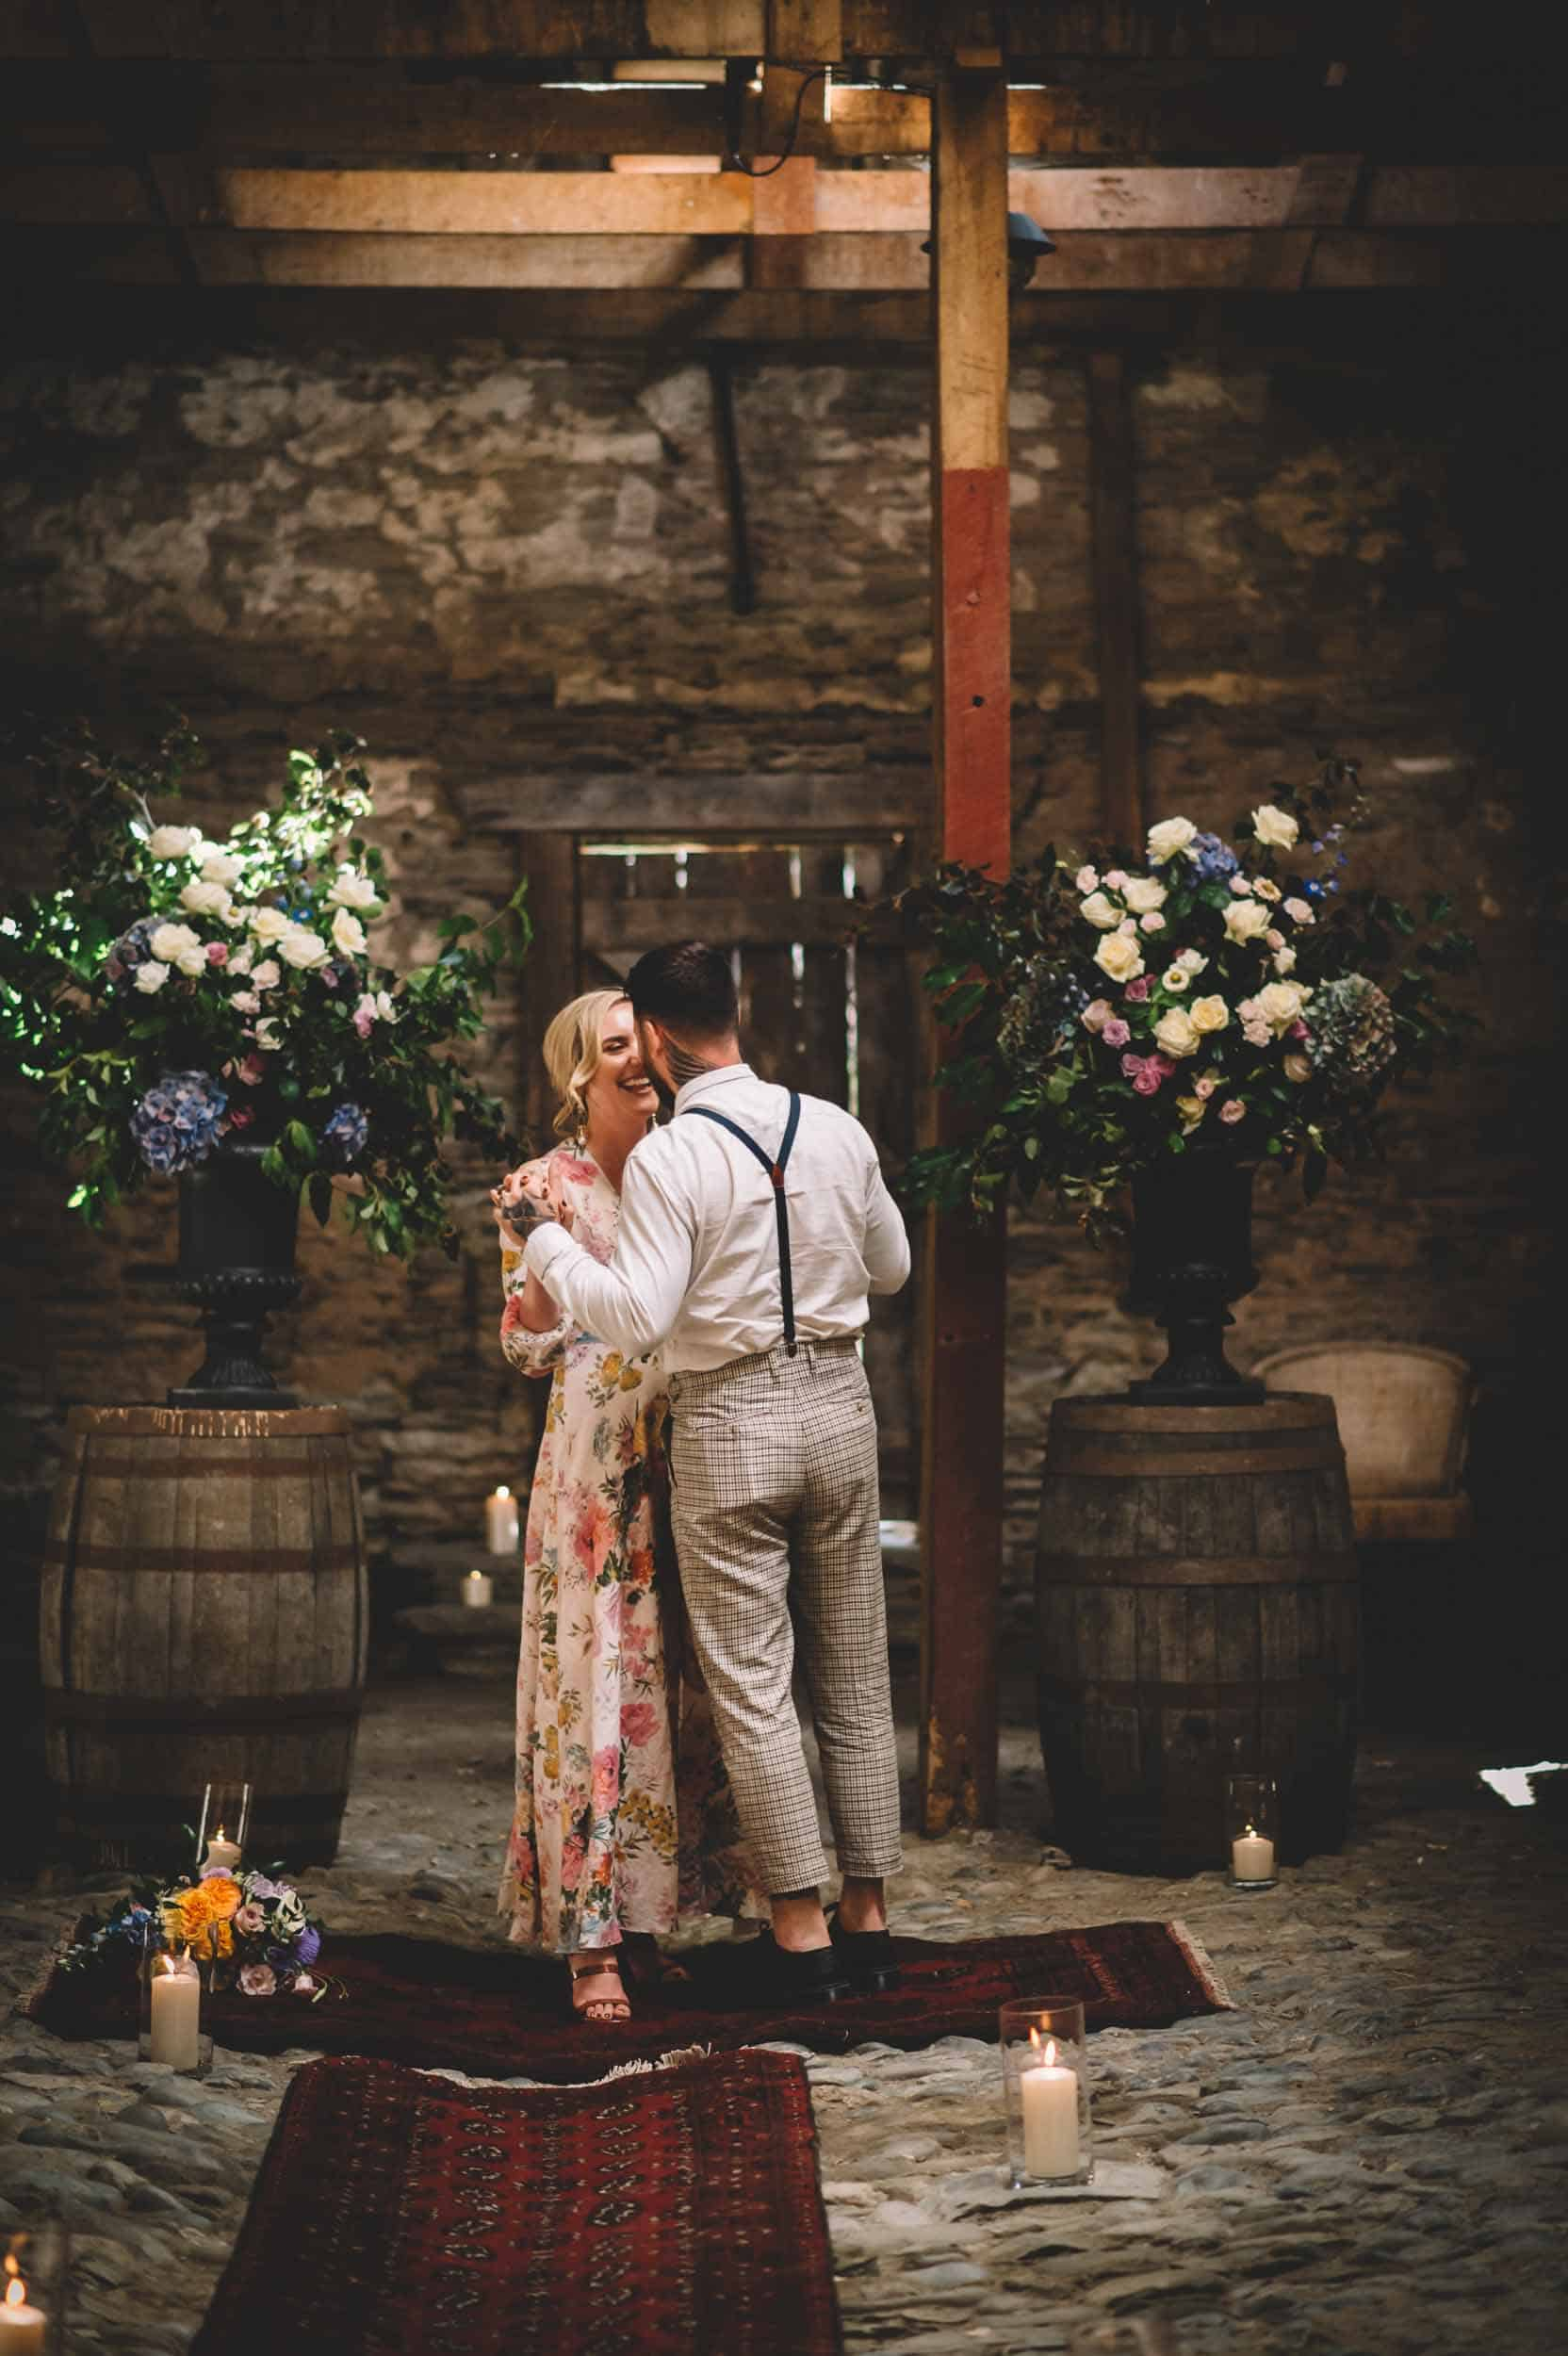 Nick & Nina's Thurlby Domain Elopement old stone stables bride & groom photos